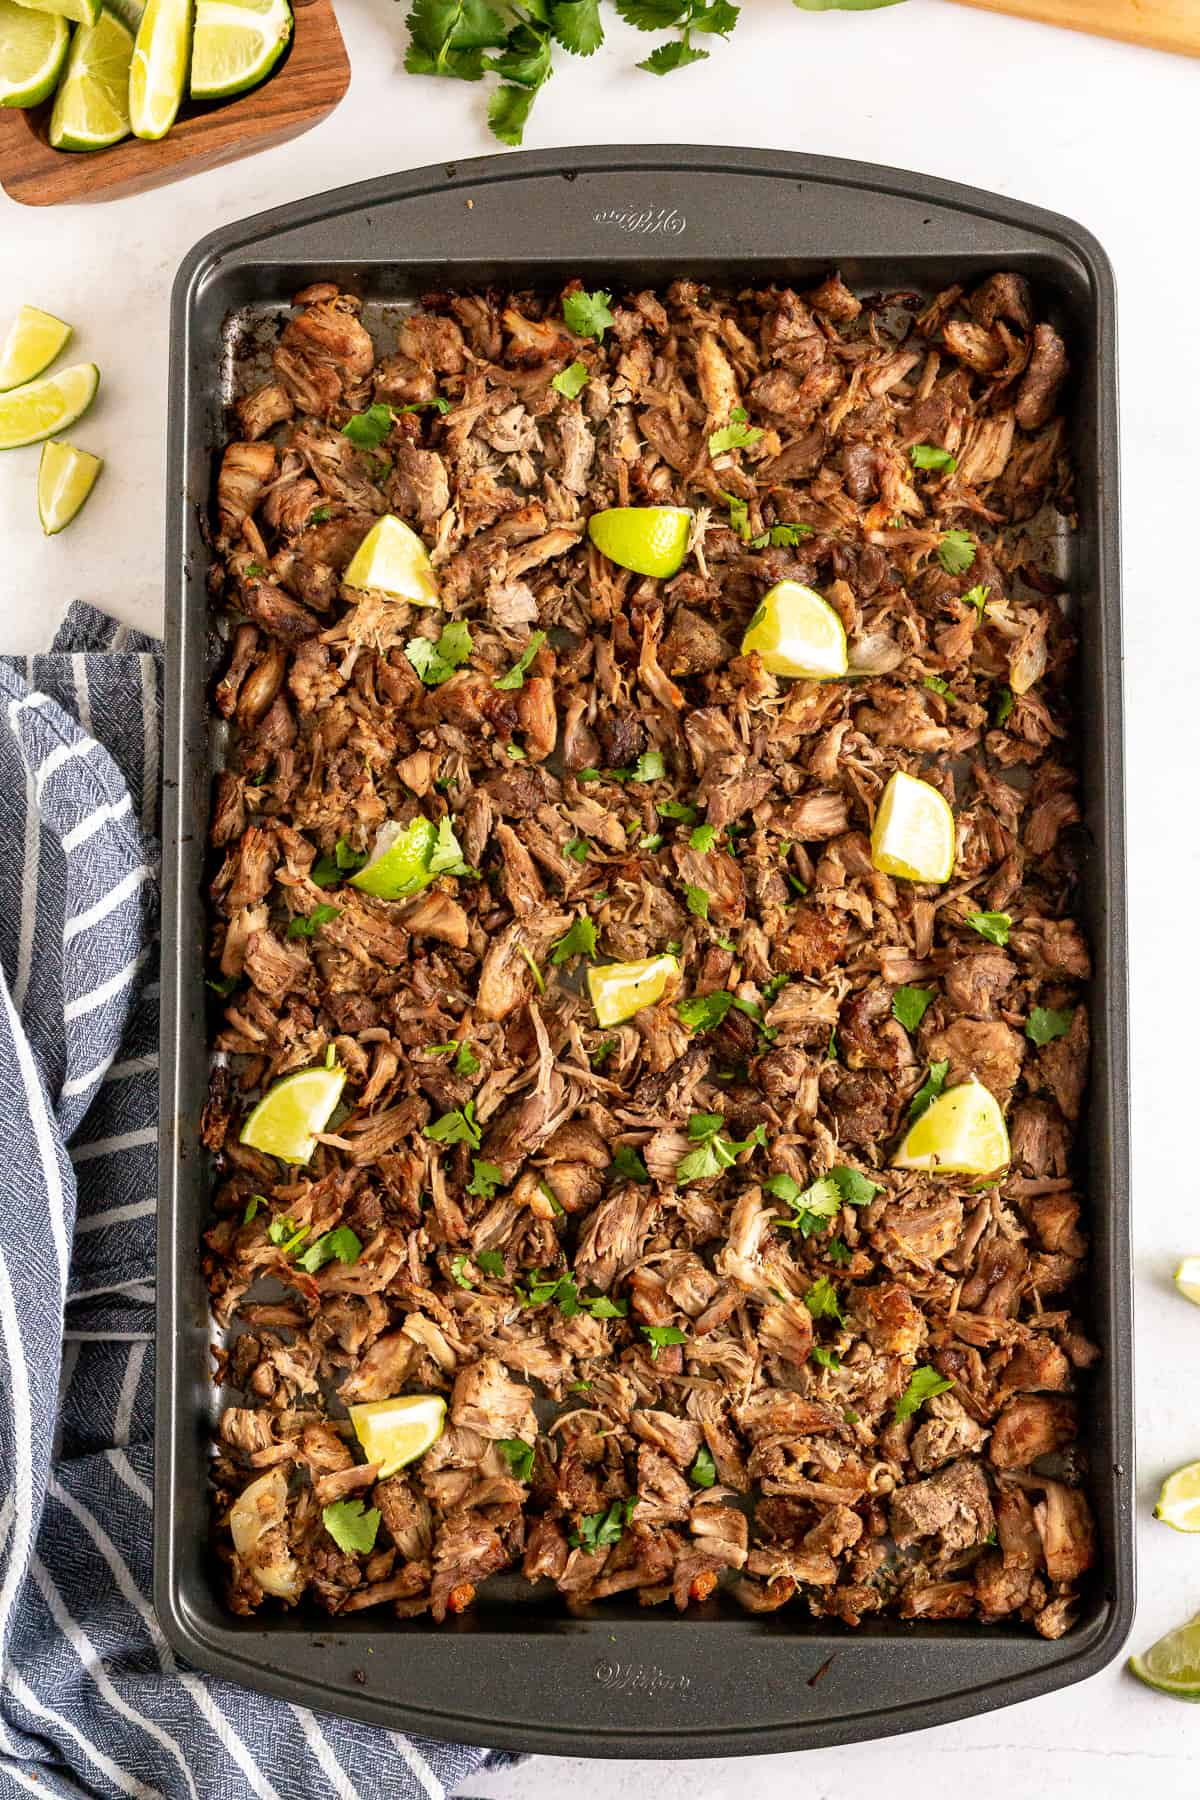 A baking sheet filled with carnitas and pieces of lime.